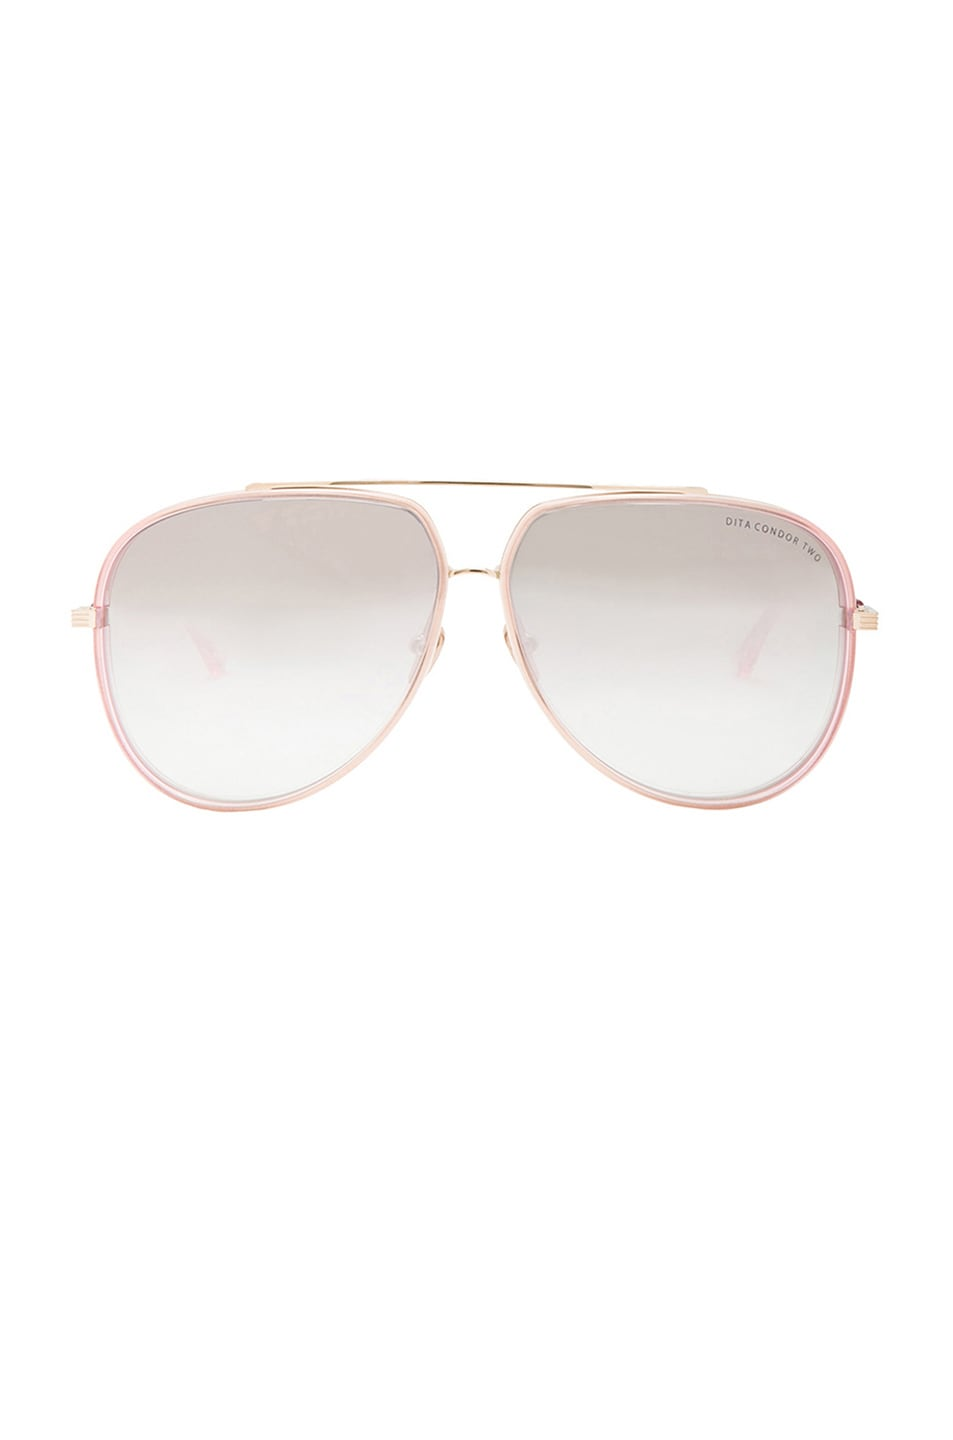 Image 1 of Dita Condor Two Sunglasses in Pink Mirror